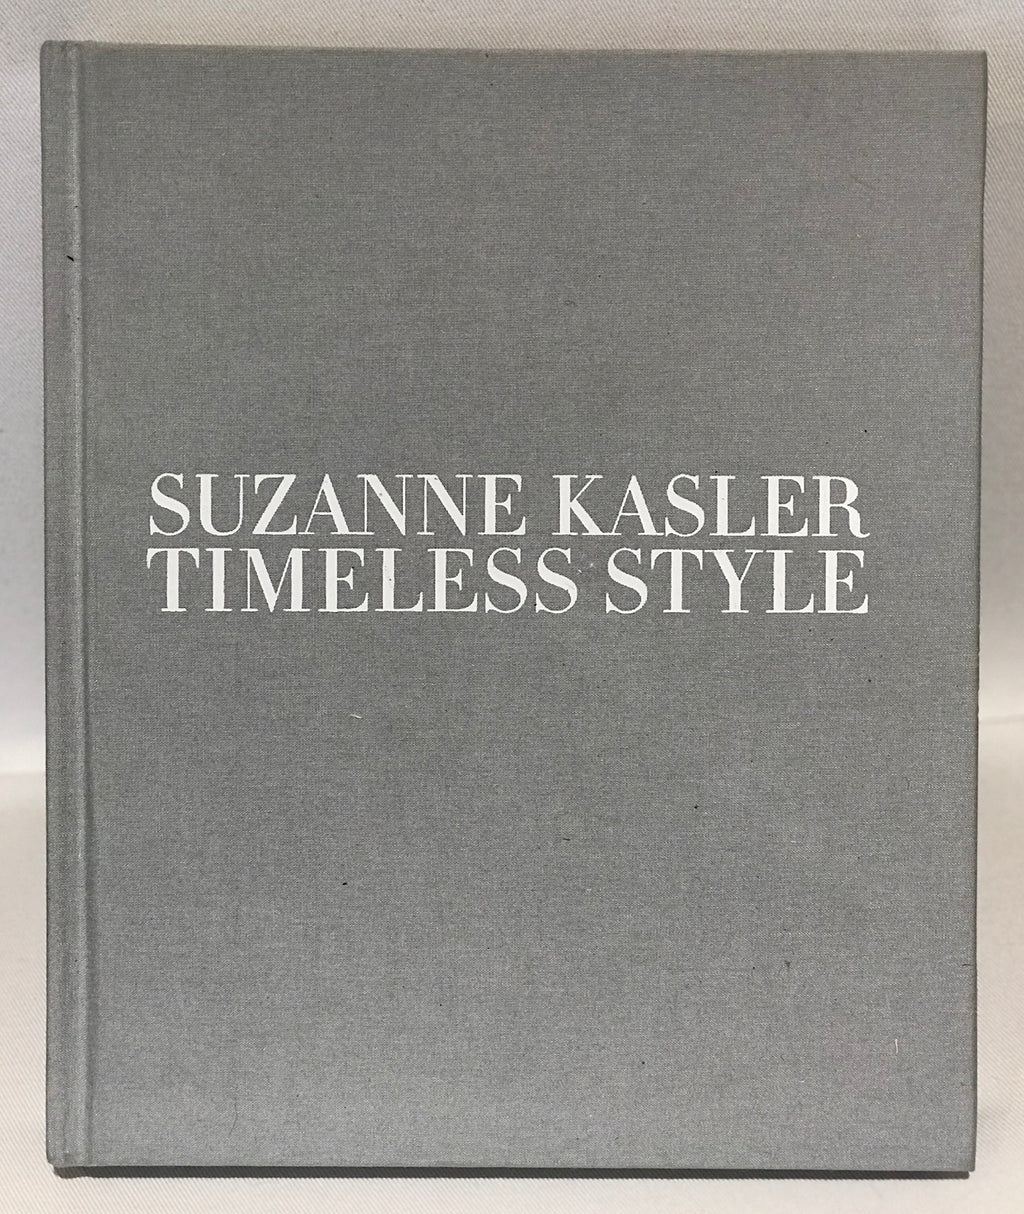 Book - Suzanne Kasler Timeless Style